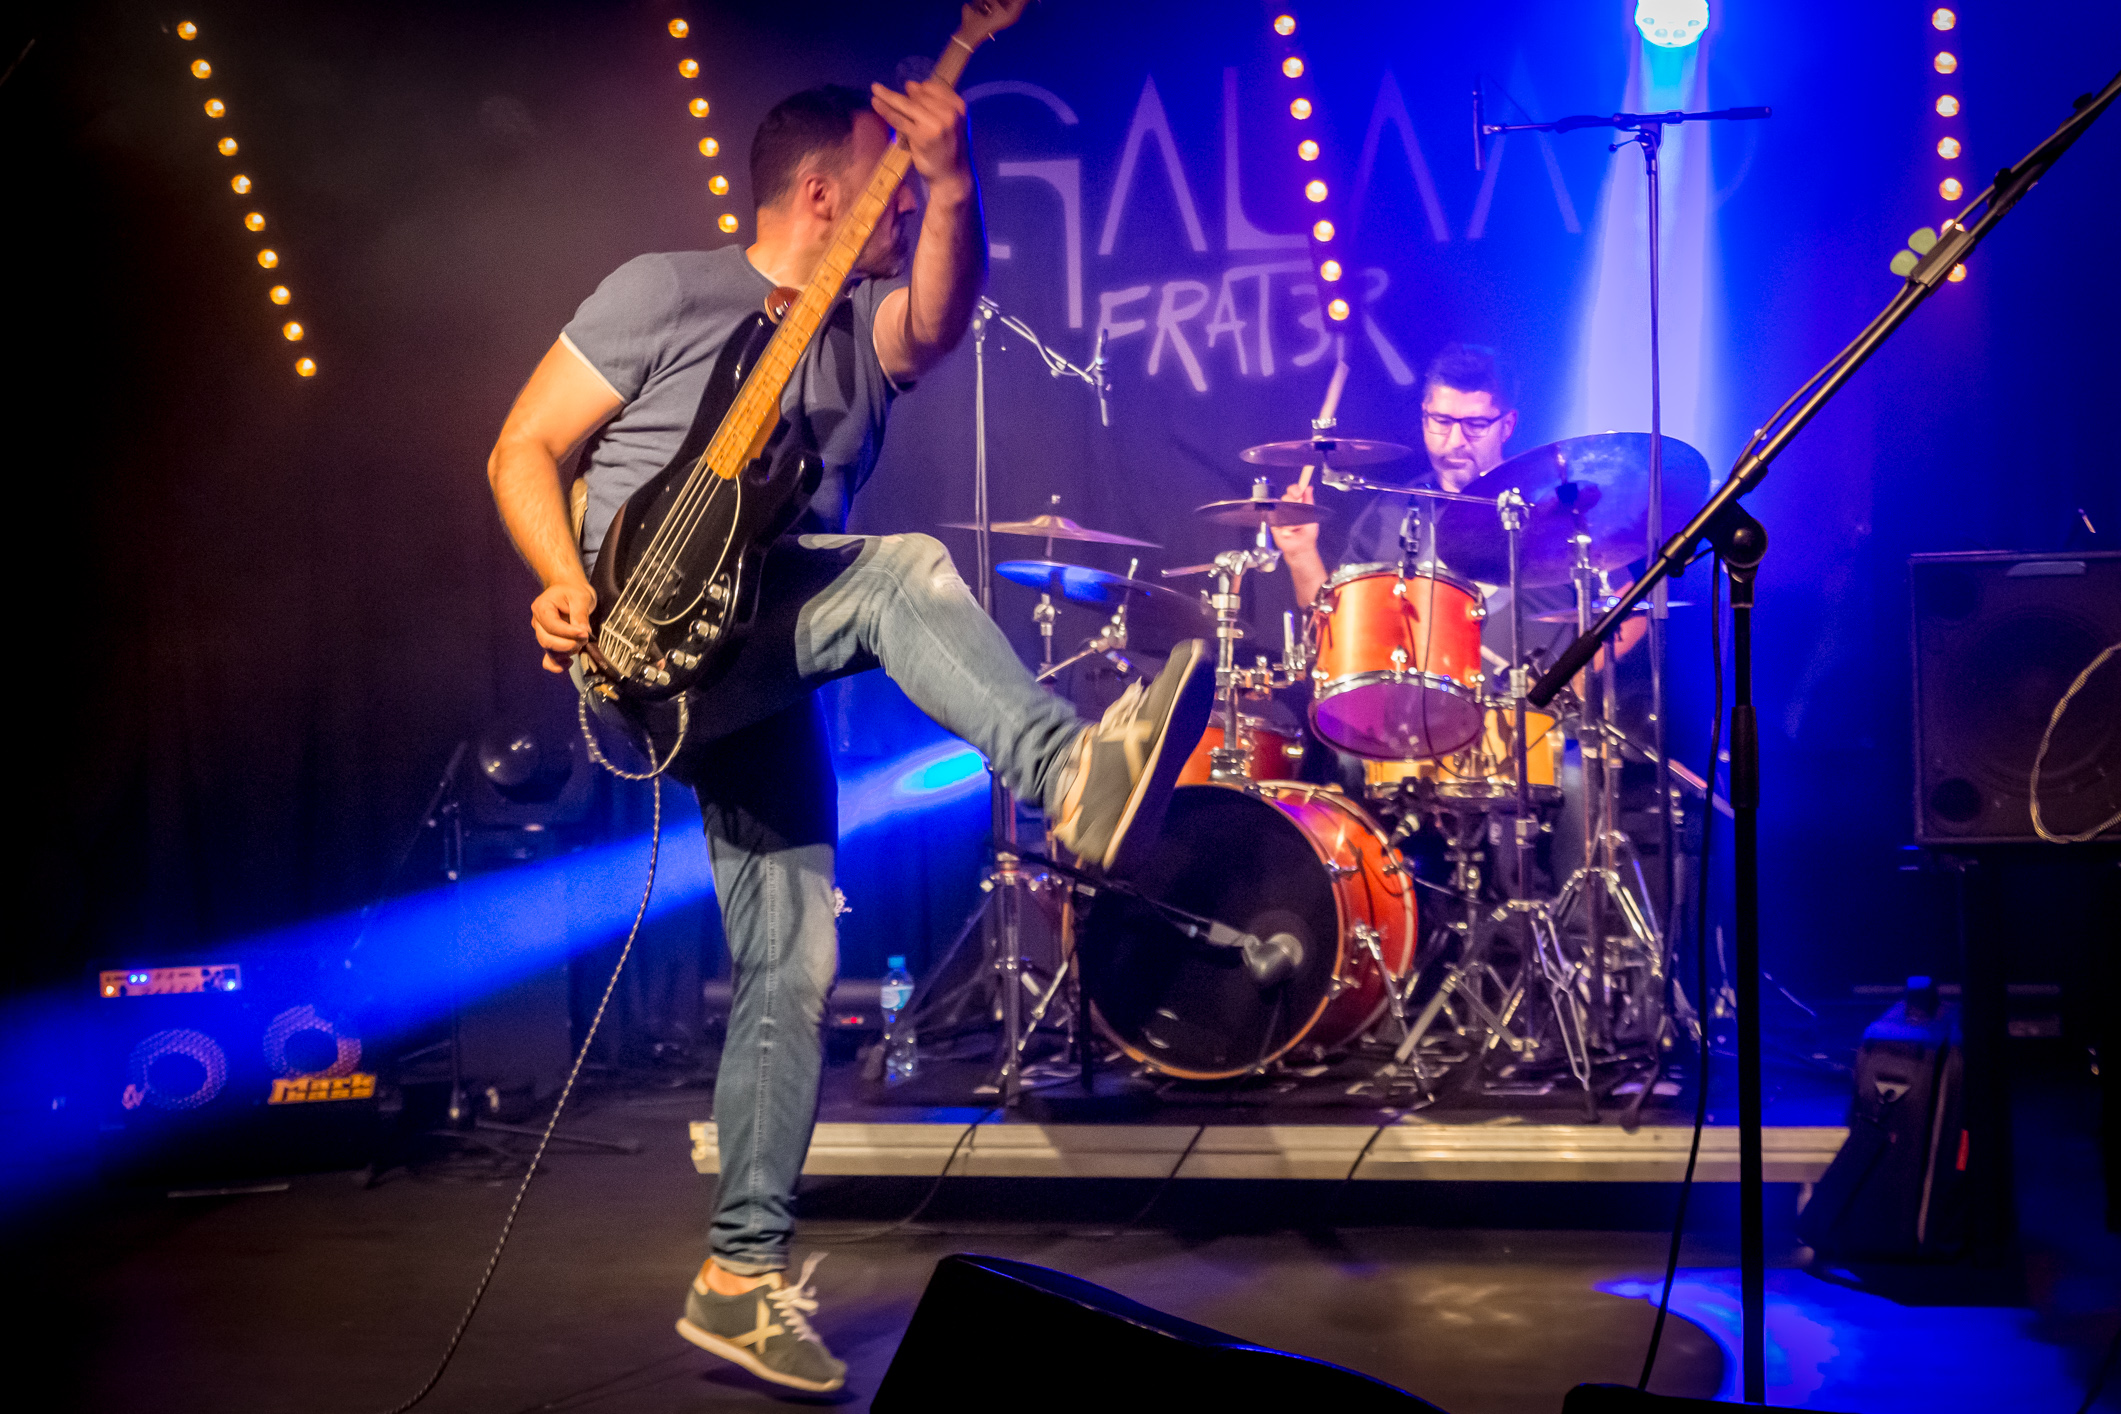 Ice Cream Men (blues-rock, Suisse) en concert à l'Azimut d'Estavayer-le-Lac (Suisse), le 18 mai 2019. Photo: Stéphane Gallay, sous licence Creative Commons (CC-BY)